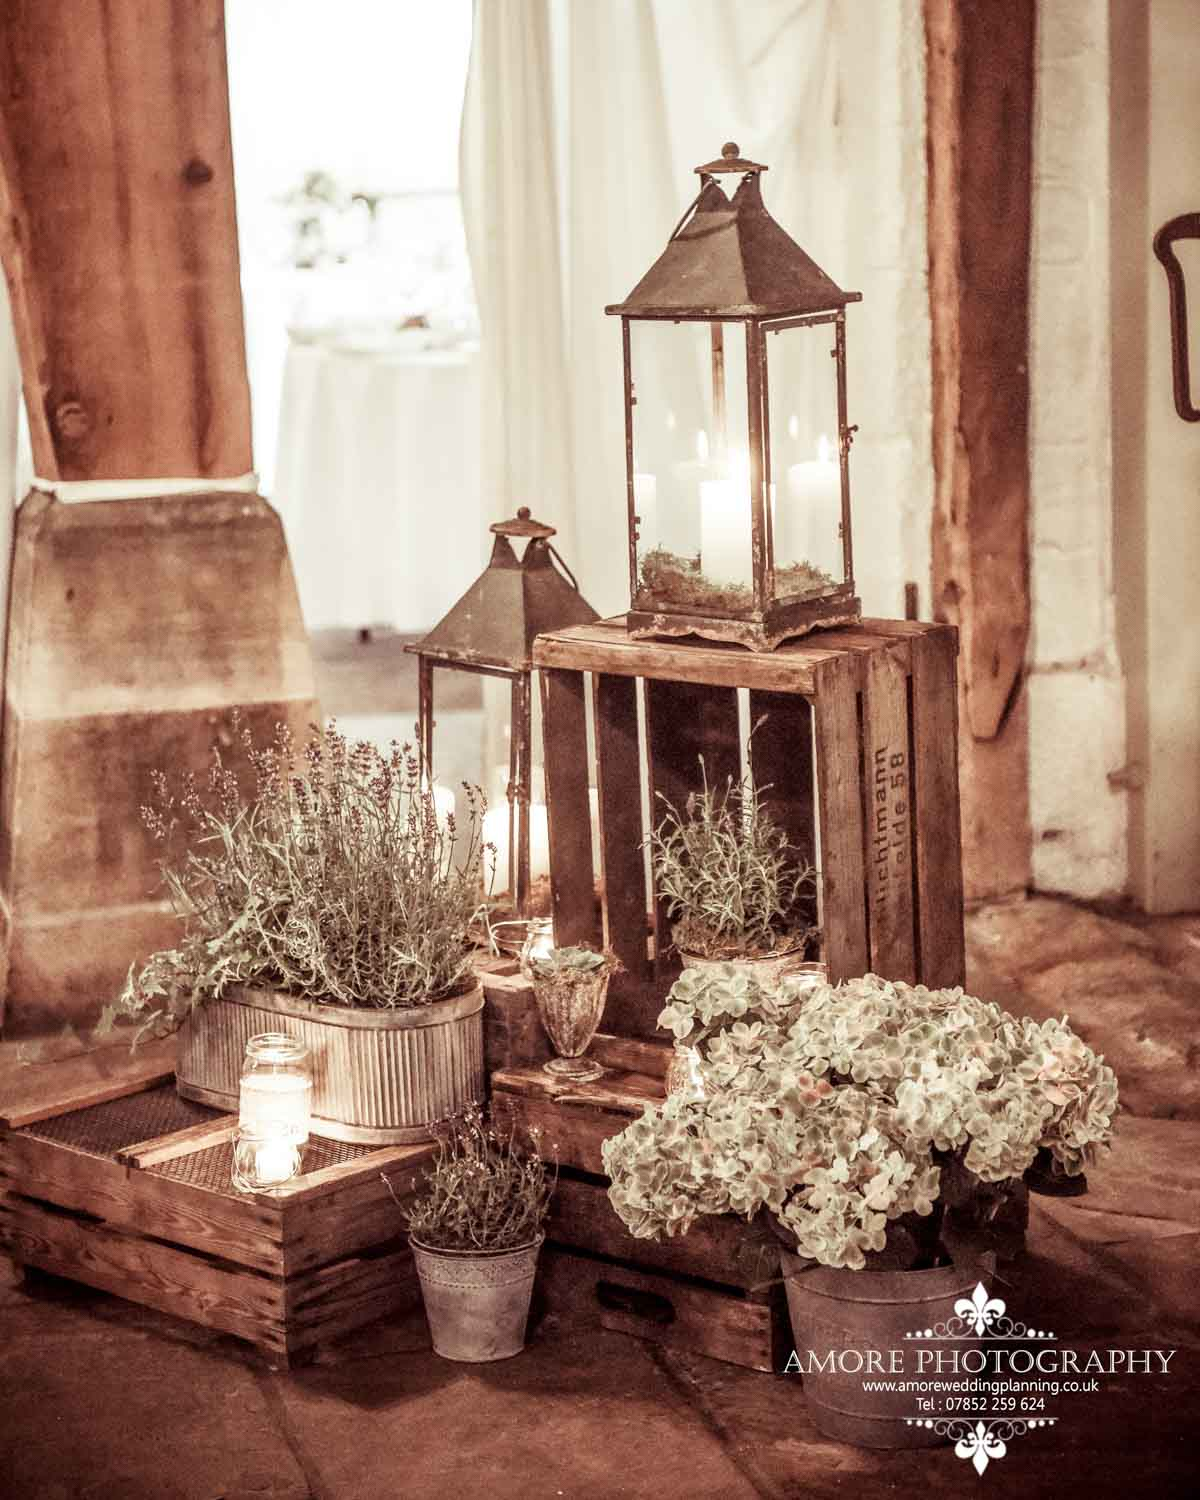 Vintage Wedding Photographer Wakefield North Yorkshire Leeds Wedding Photography Vintage Rustic Barn Weddings (141)